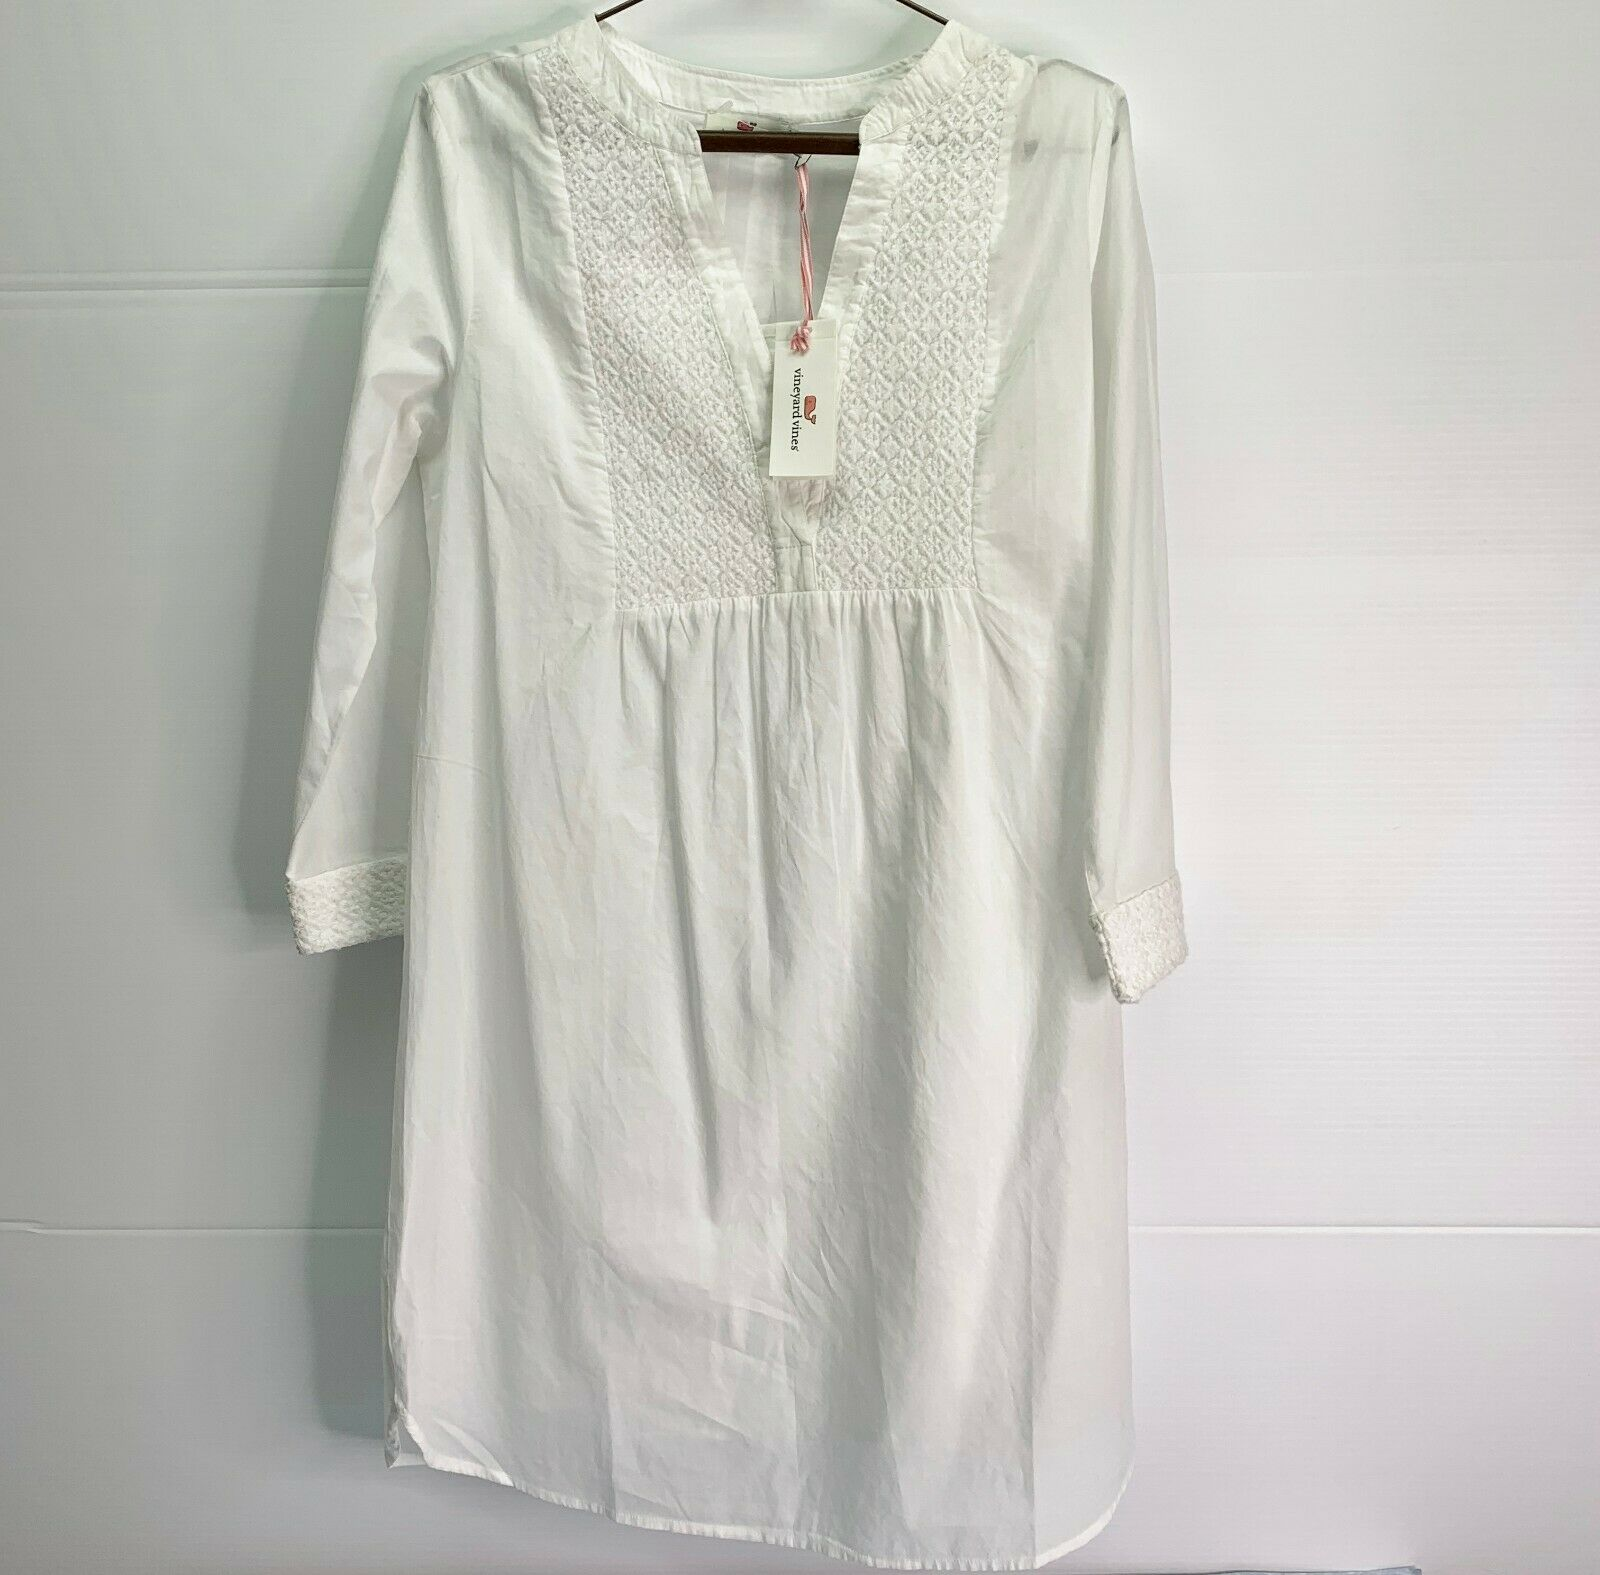 Vineyard Vines Beach Dress Womens Small Coco Vines Embroidered White Cotton NWT